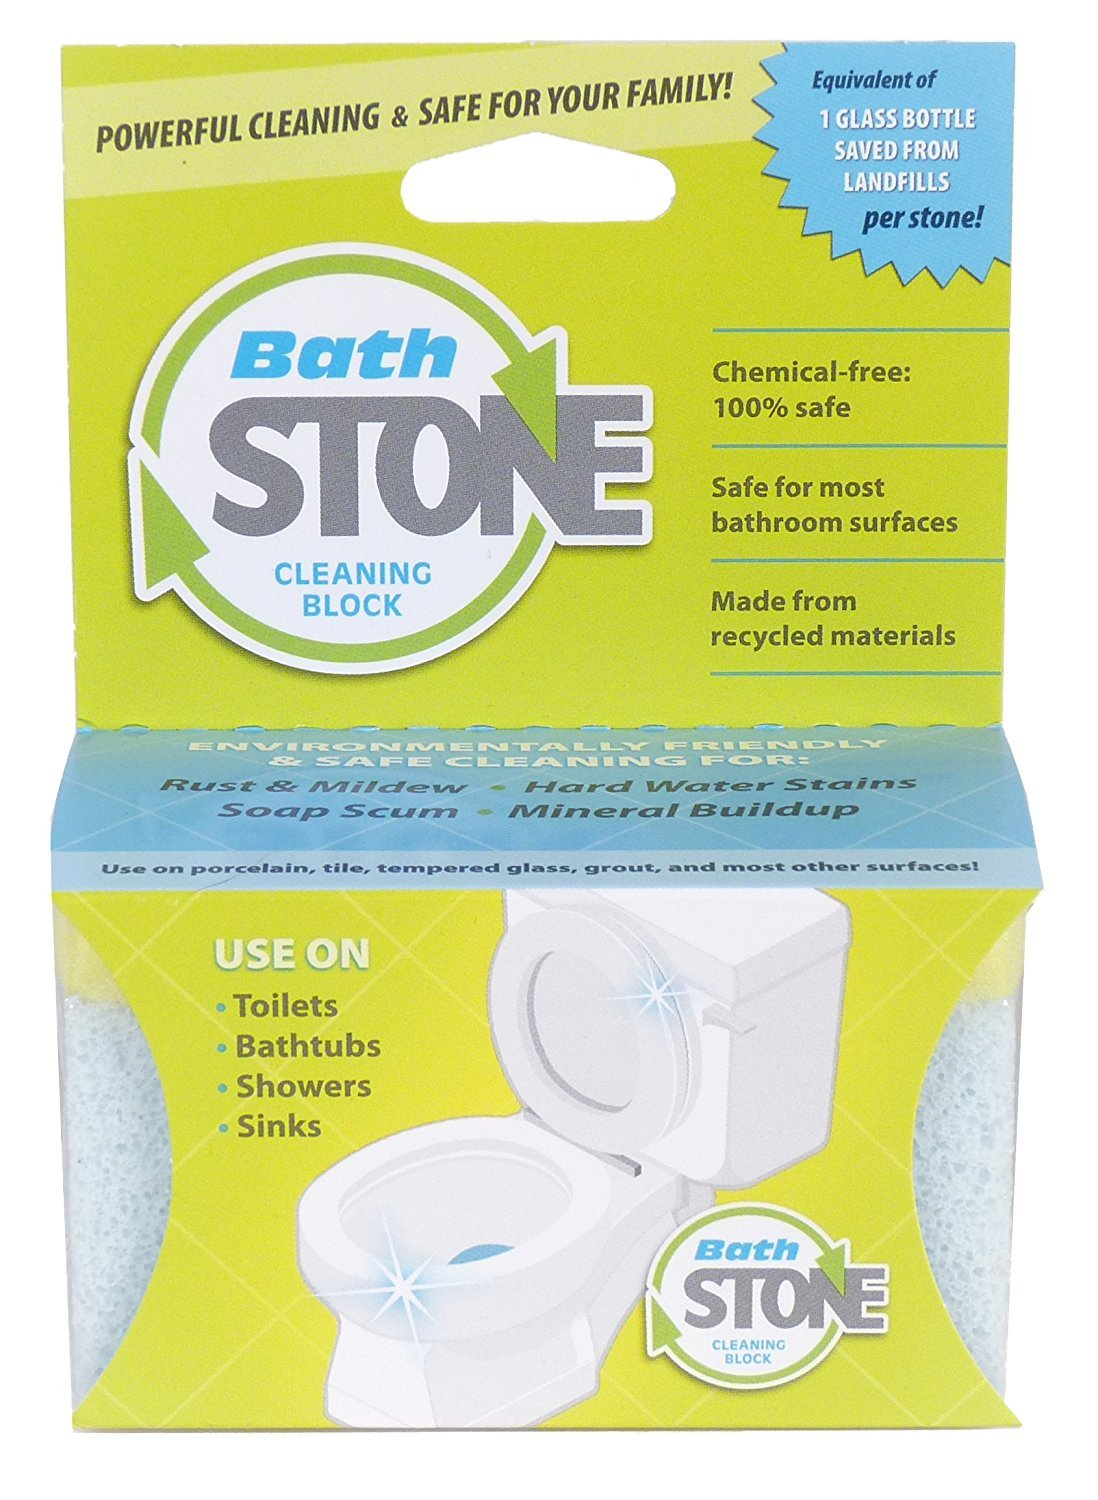 EarthStone ToiletStone Cleaning Block with Bathstone Cleaning Block by EarthStone International (Image #5)